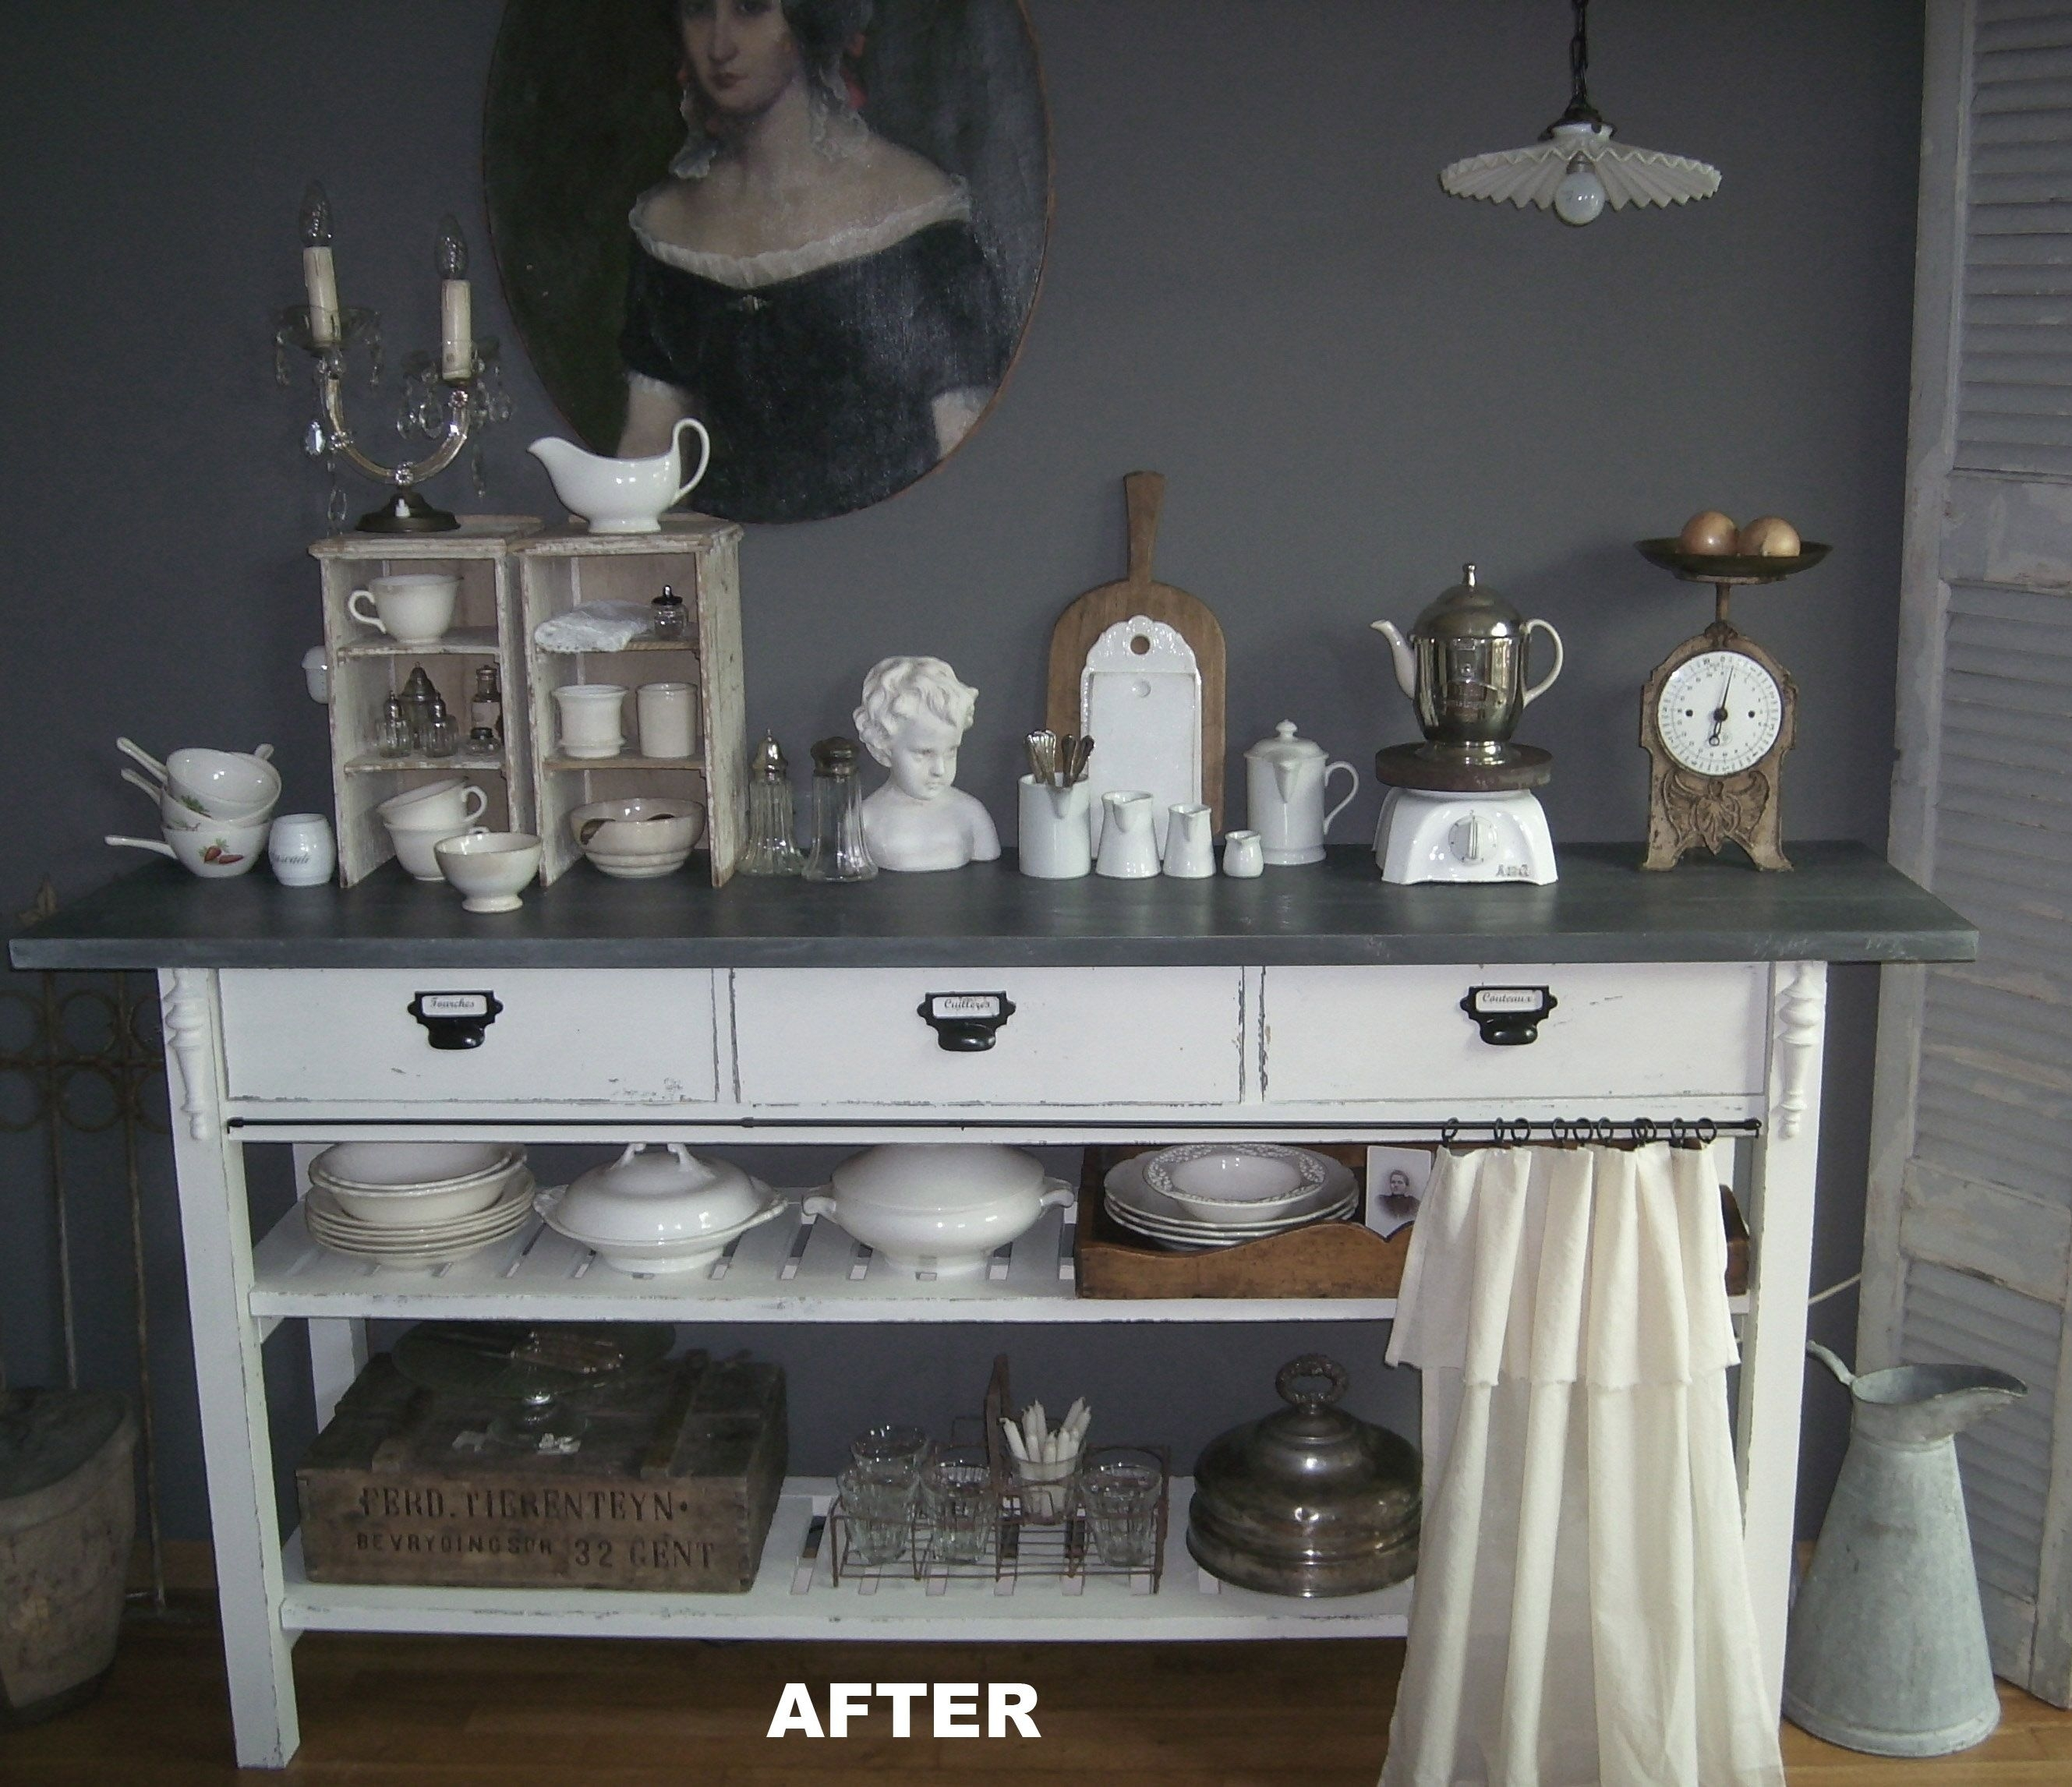 Ikea Norden Sidetable After Restyling | Ikea Hacks And Decorating regarding Leven Wine Sideboards (Image 14 of 30)